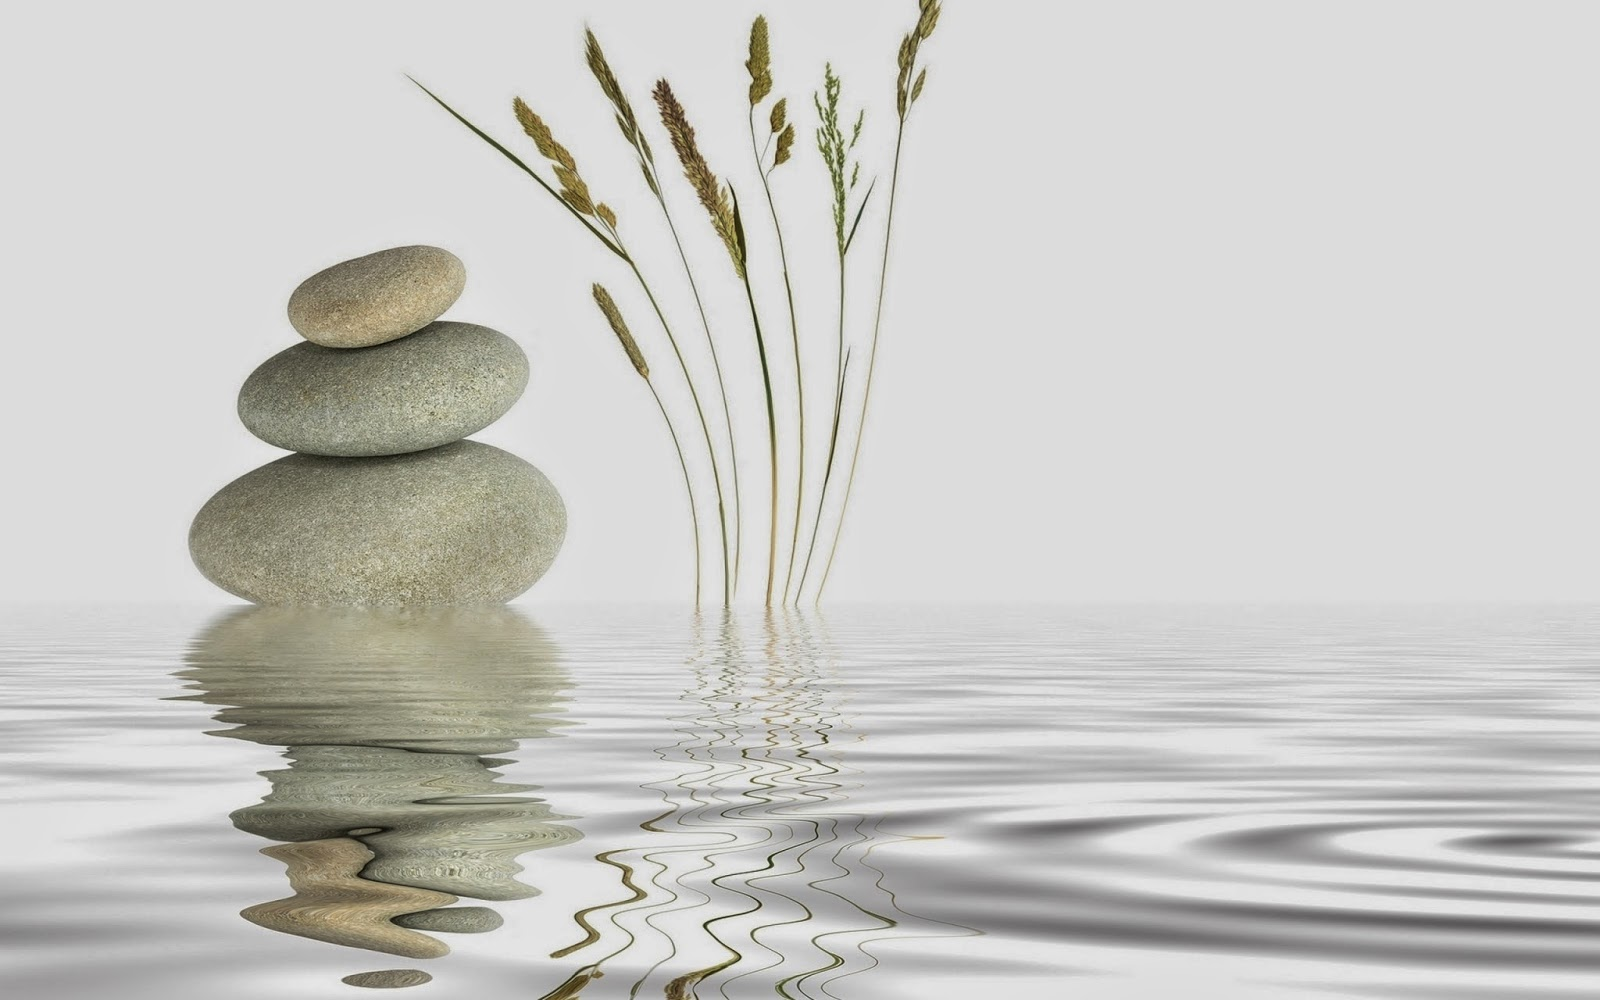 White-zen-stone-with-water-background-wallpaper-for-Mac-PC.jpg